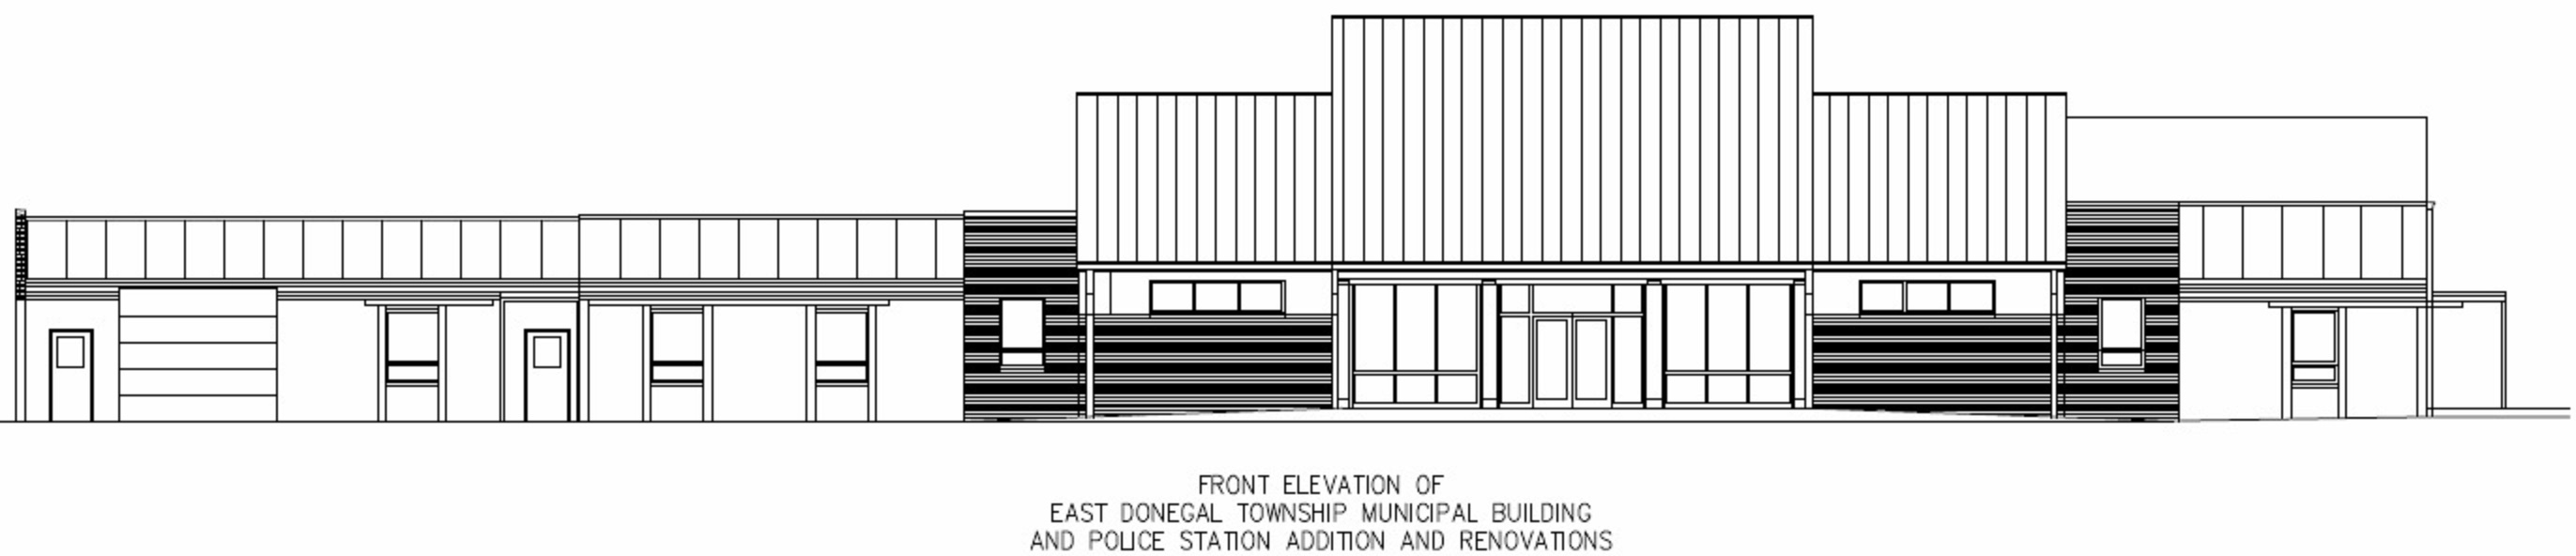 EDT Front Elevation